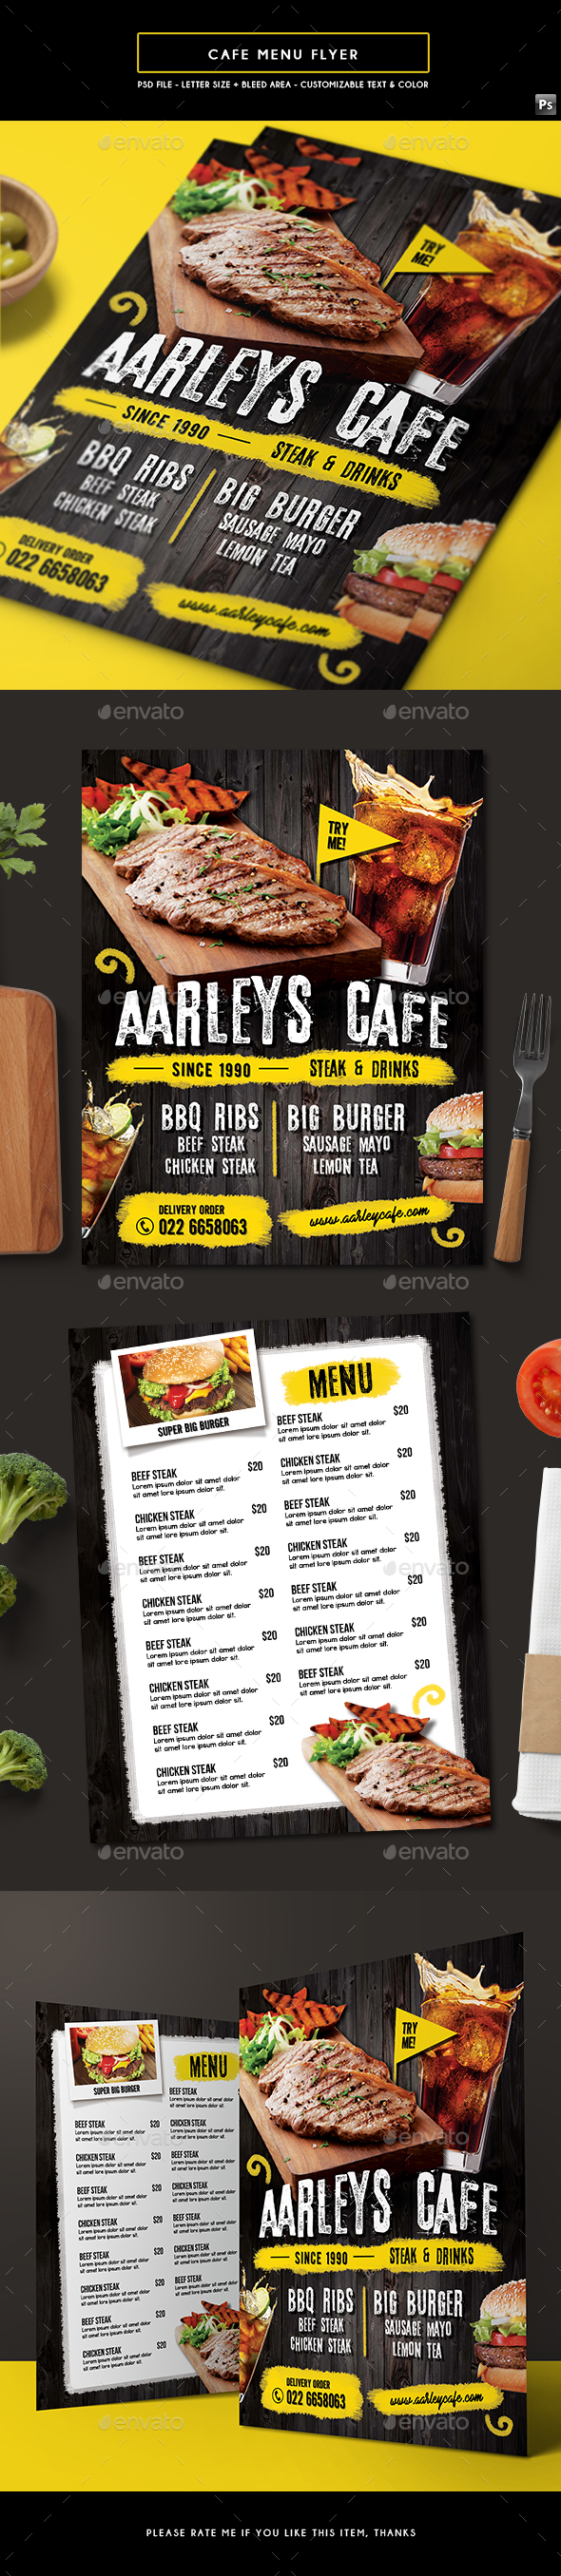 Cafe Menu Flyer - Food Menus Print Templates